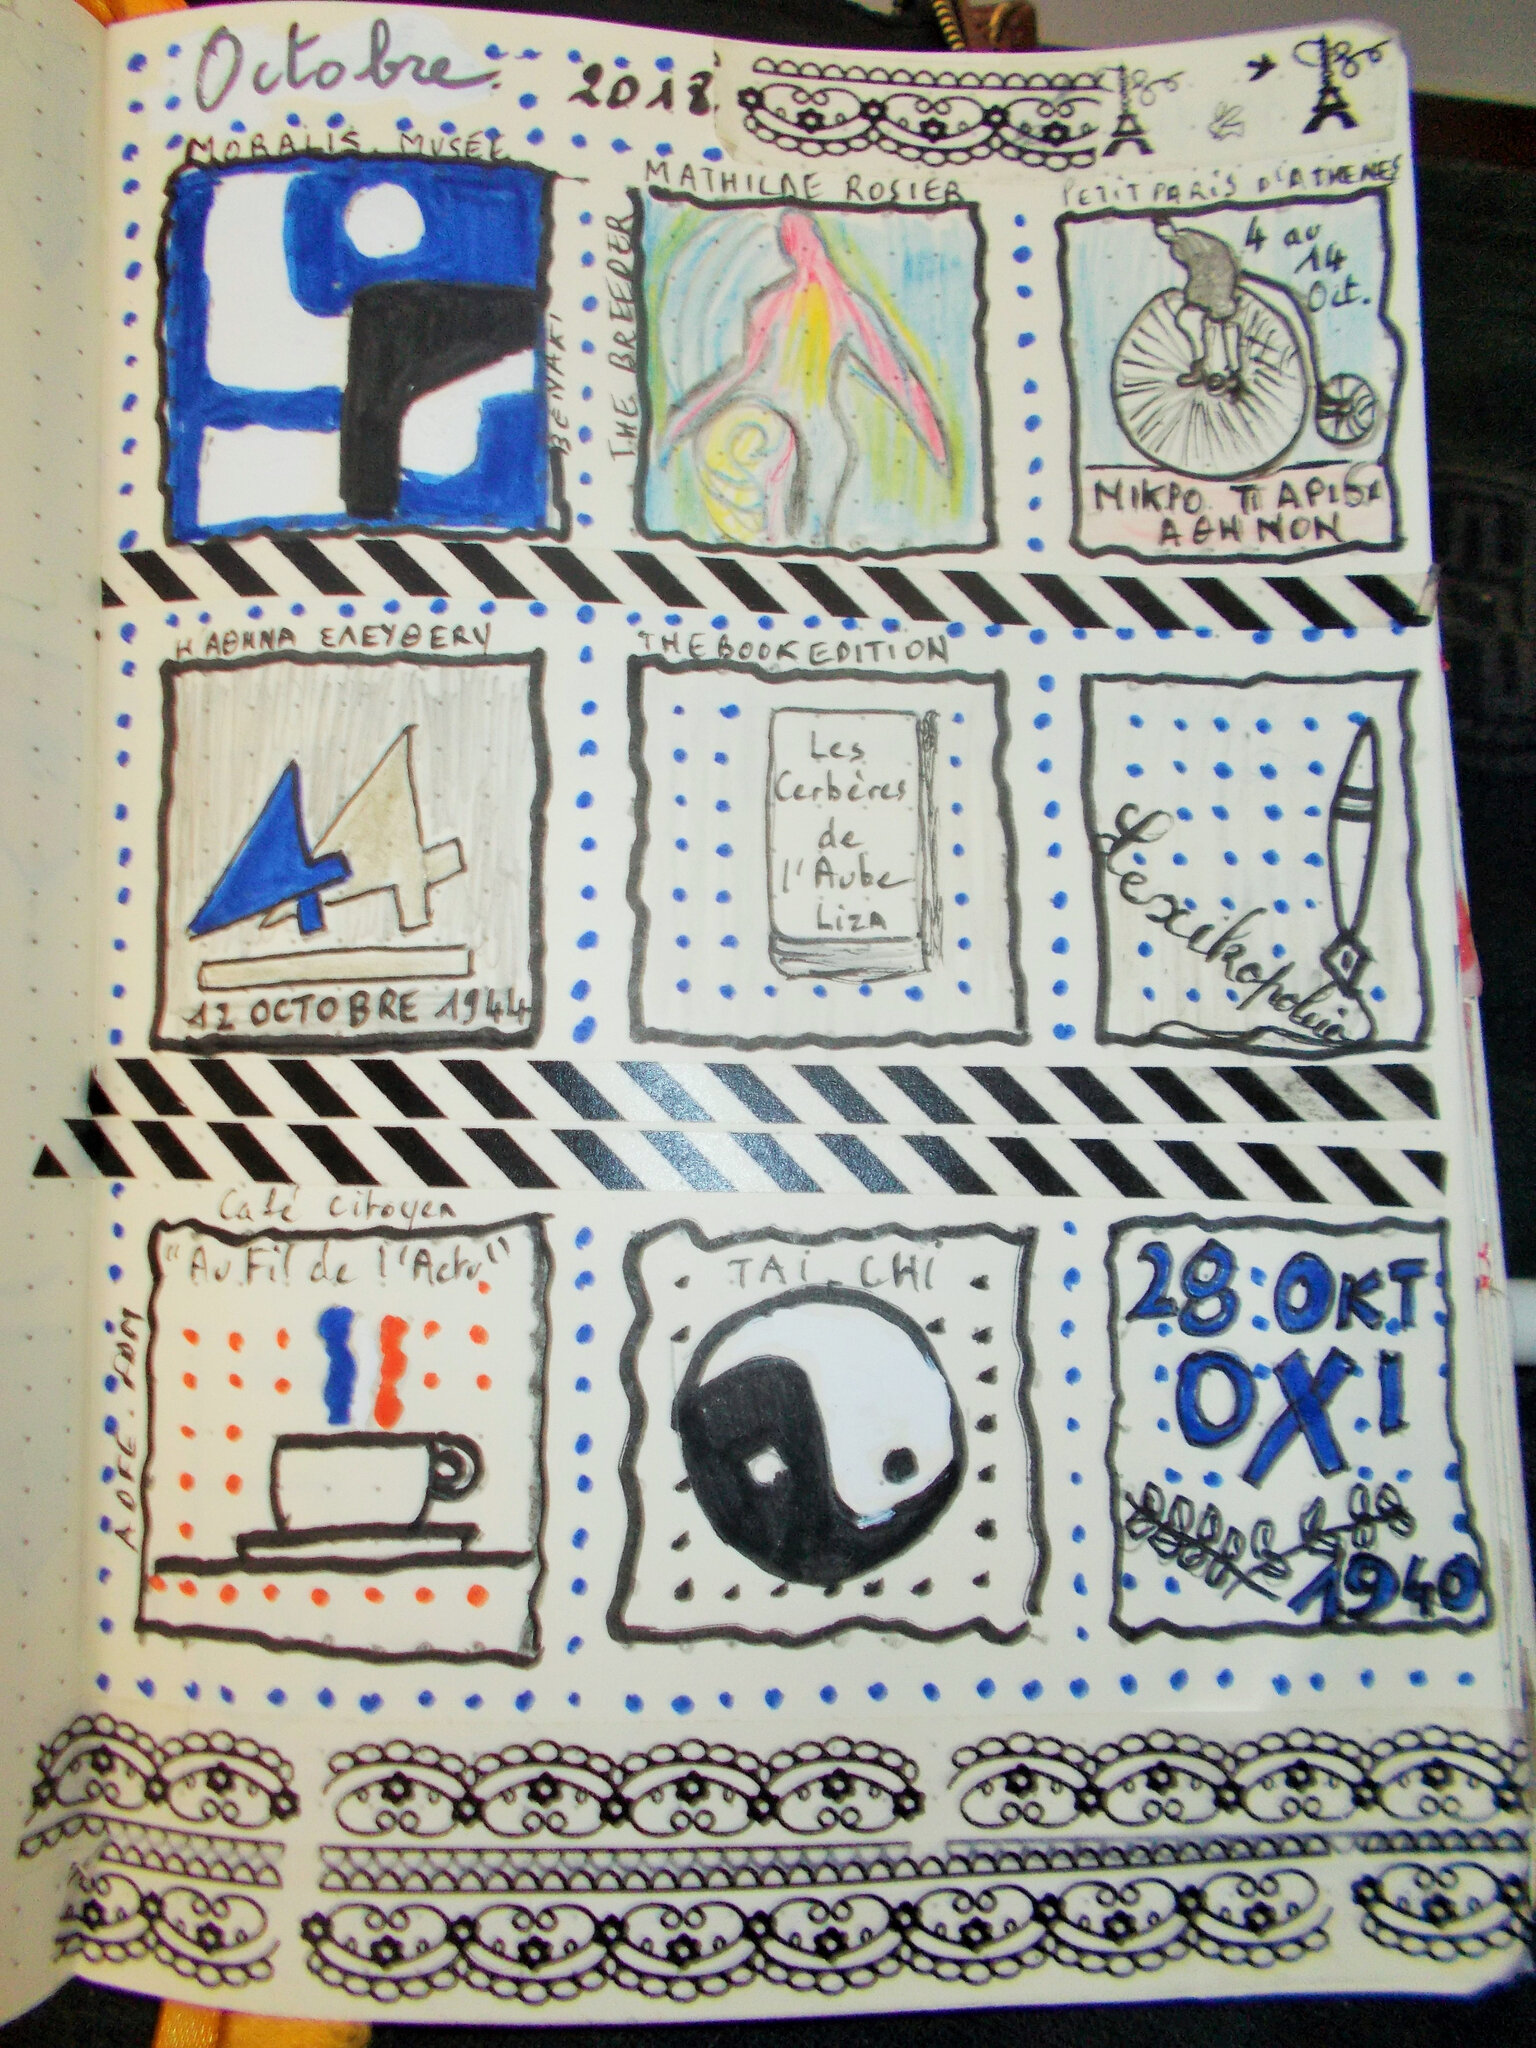 Le Bullet journal d'octobre